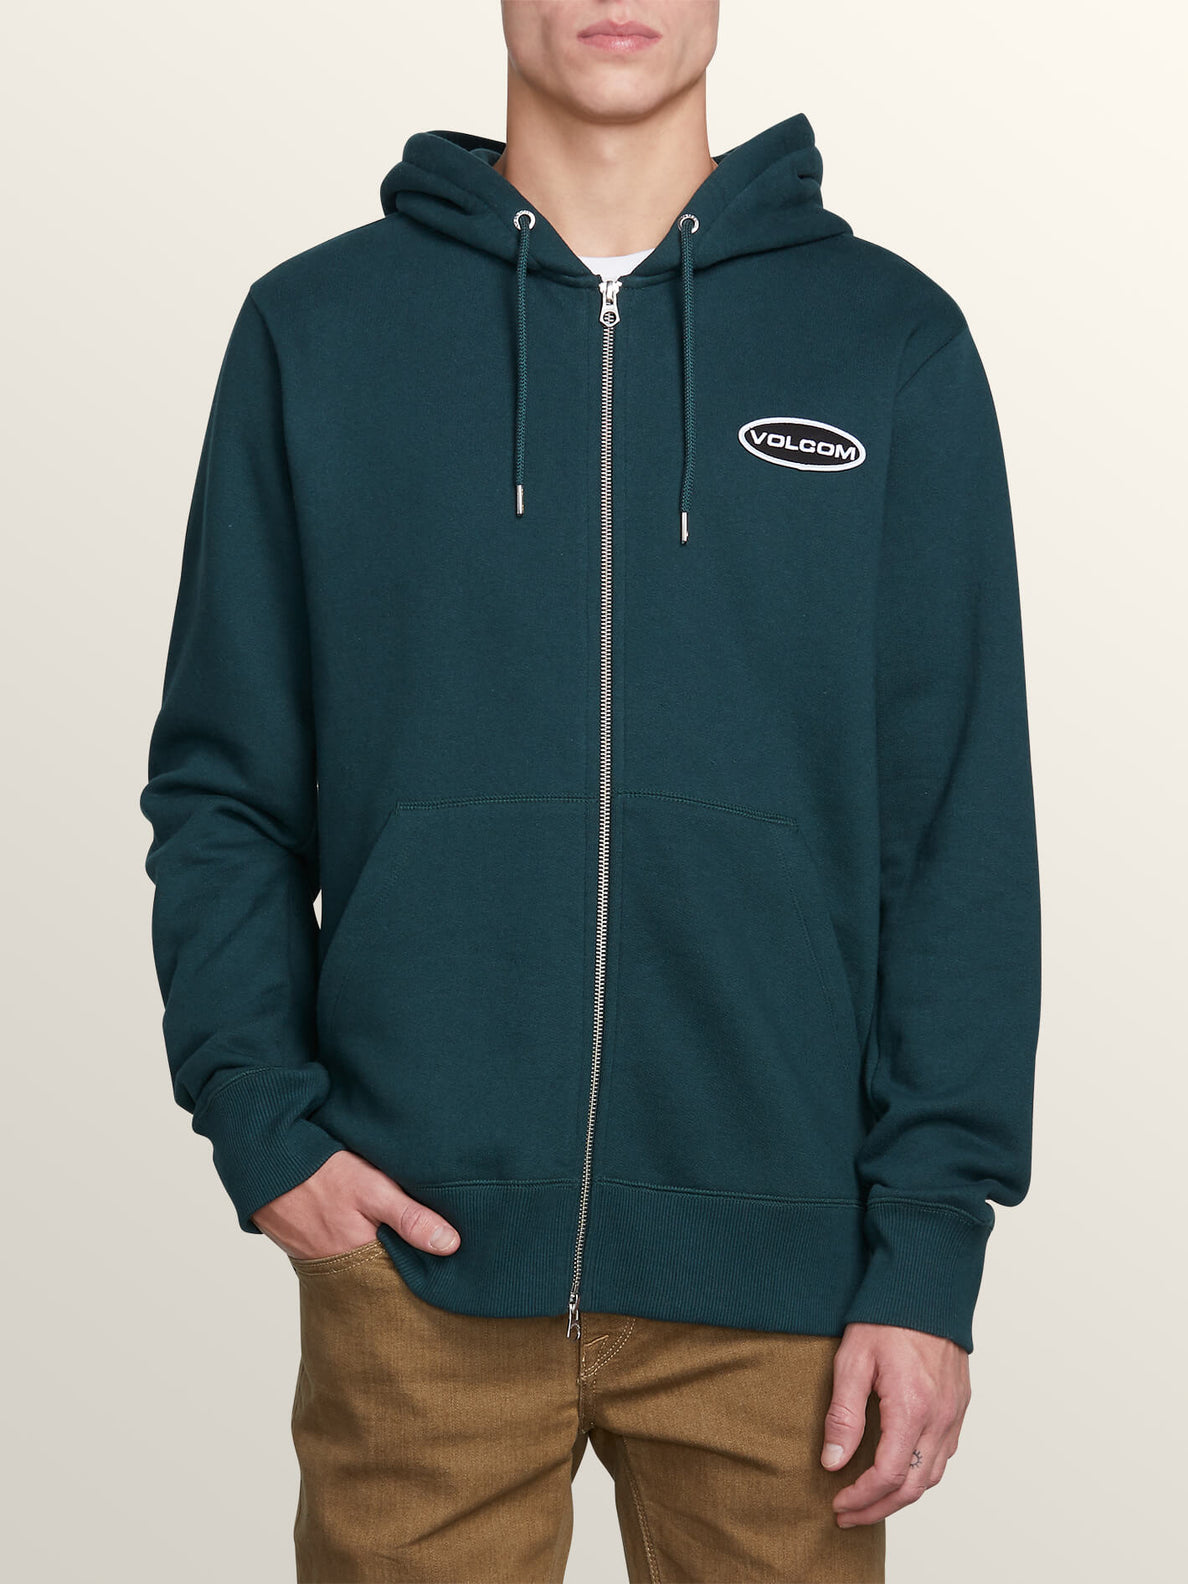 Shop Zip Hoodie In Dark Pine, Front View